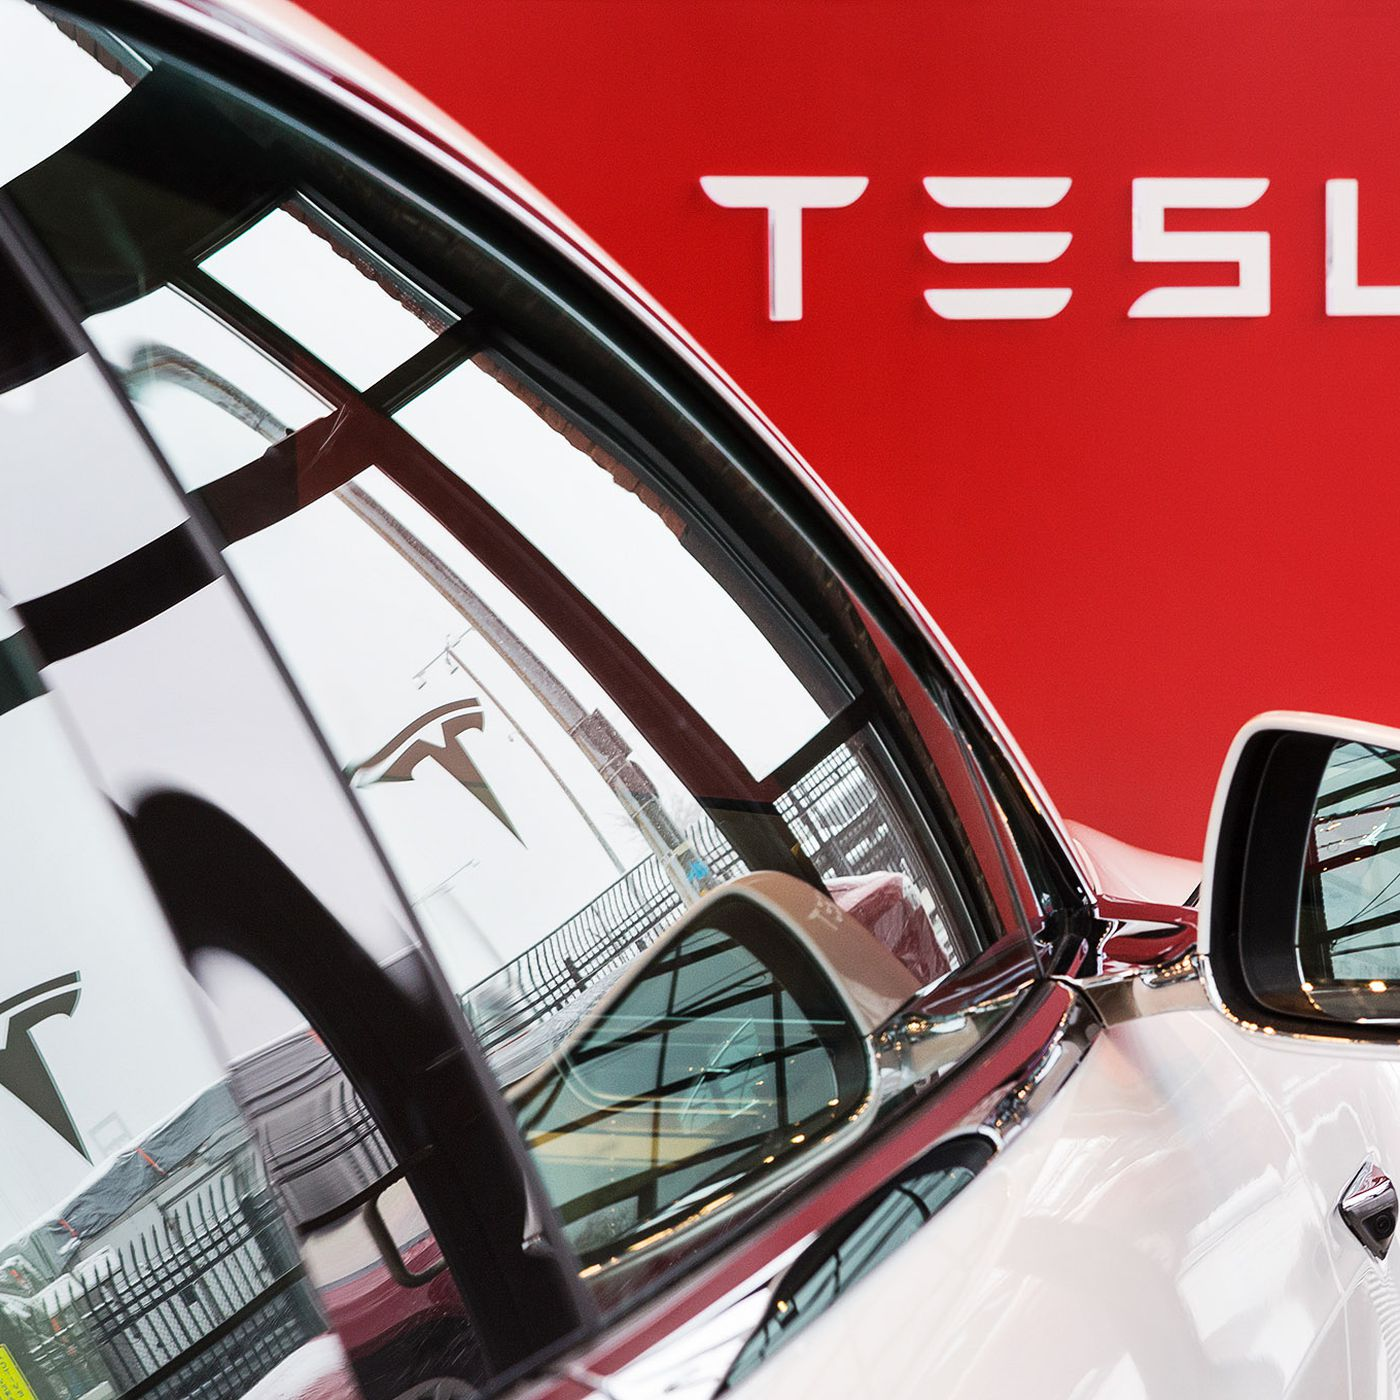 tesla accused of knowingly selling defective vehicles in new lawsuit the verge tesla accused of knowingly selling